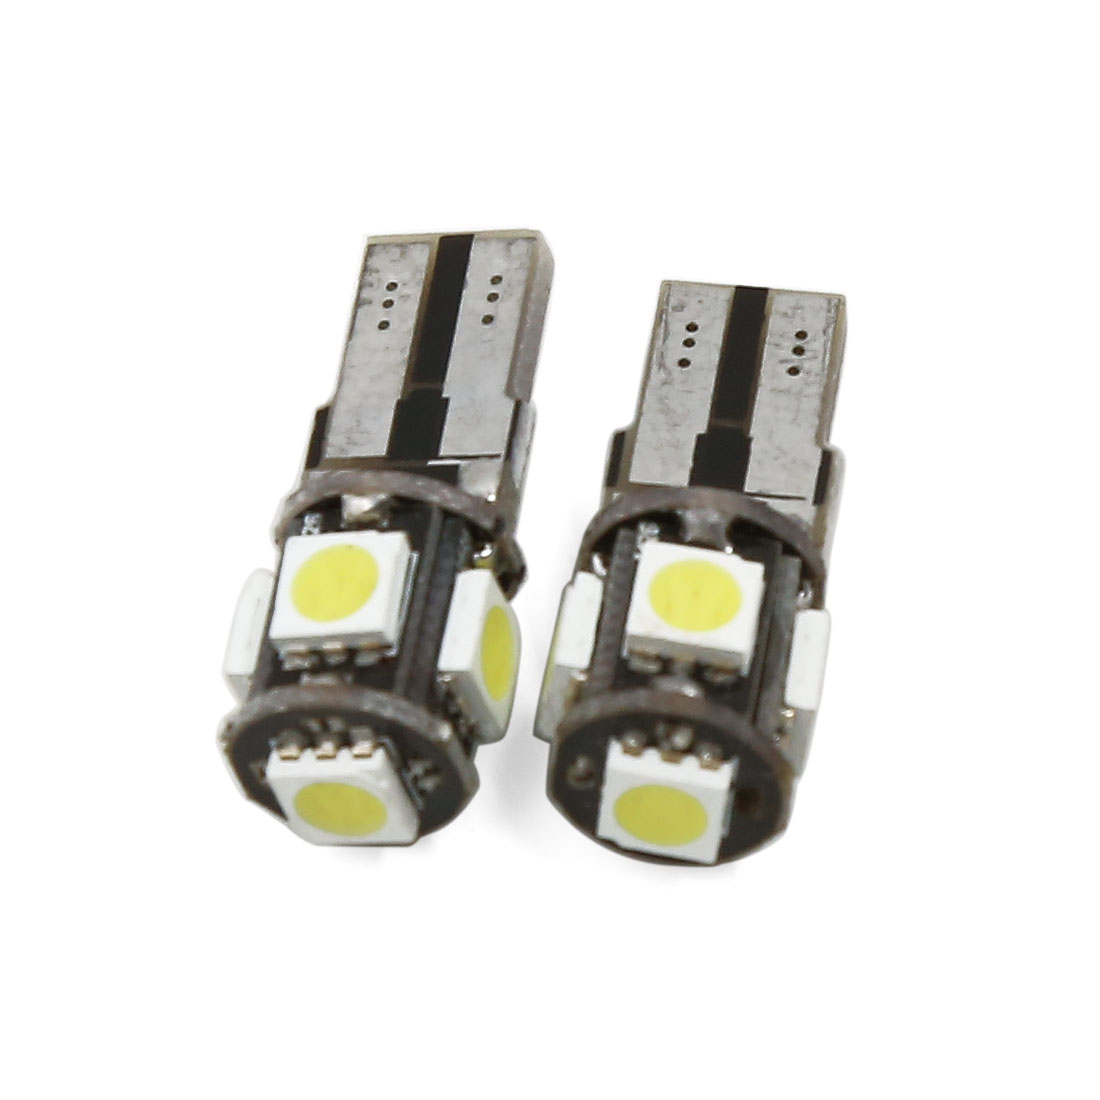 2 Pcs T10 White 5 SMD 5050 LED Canbus Error Free Car Side Wedge Light Interior